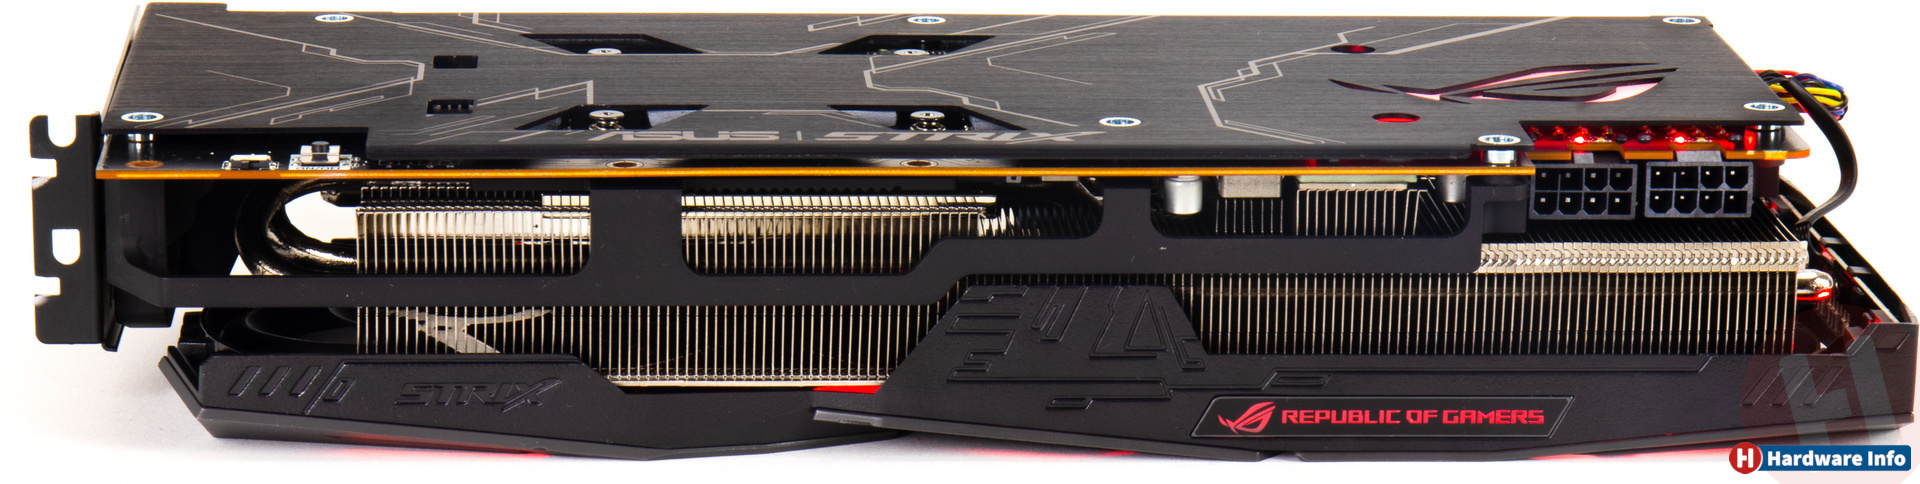 https://content.hwigroup.net/images/products_1920x1080/537351/3/asus-rog-radeon-rx-5700-xt-strix-oc-gaming.jpg